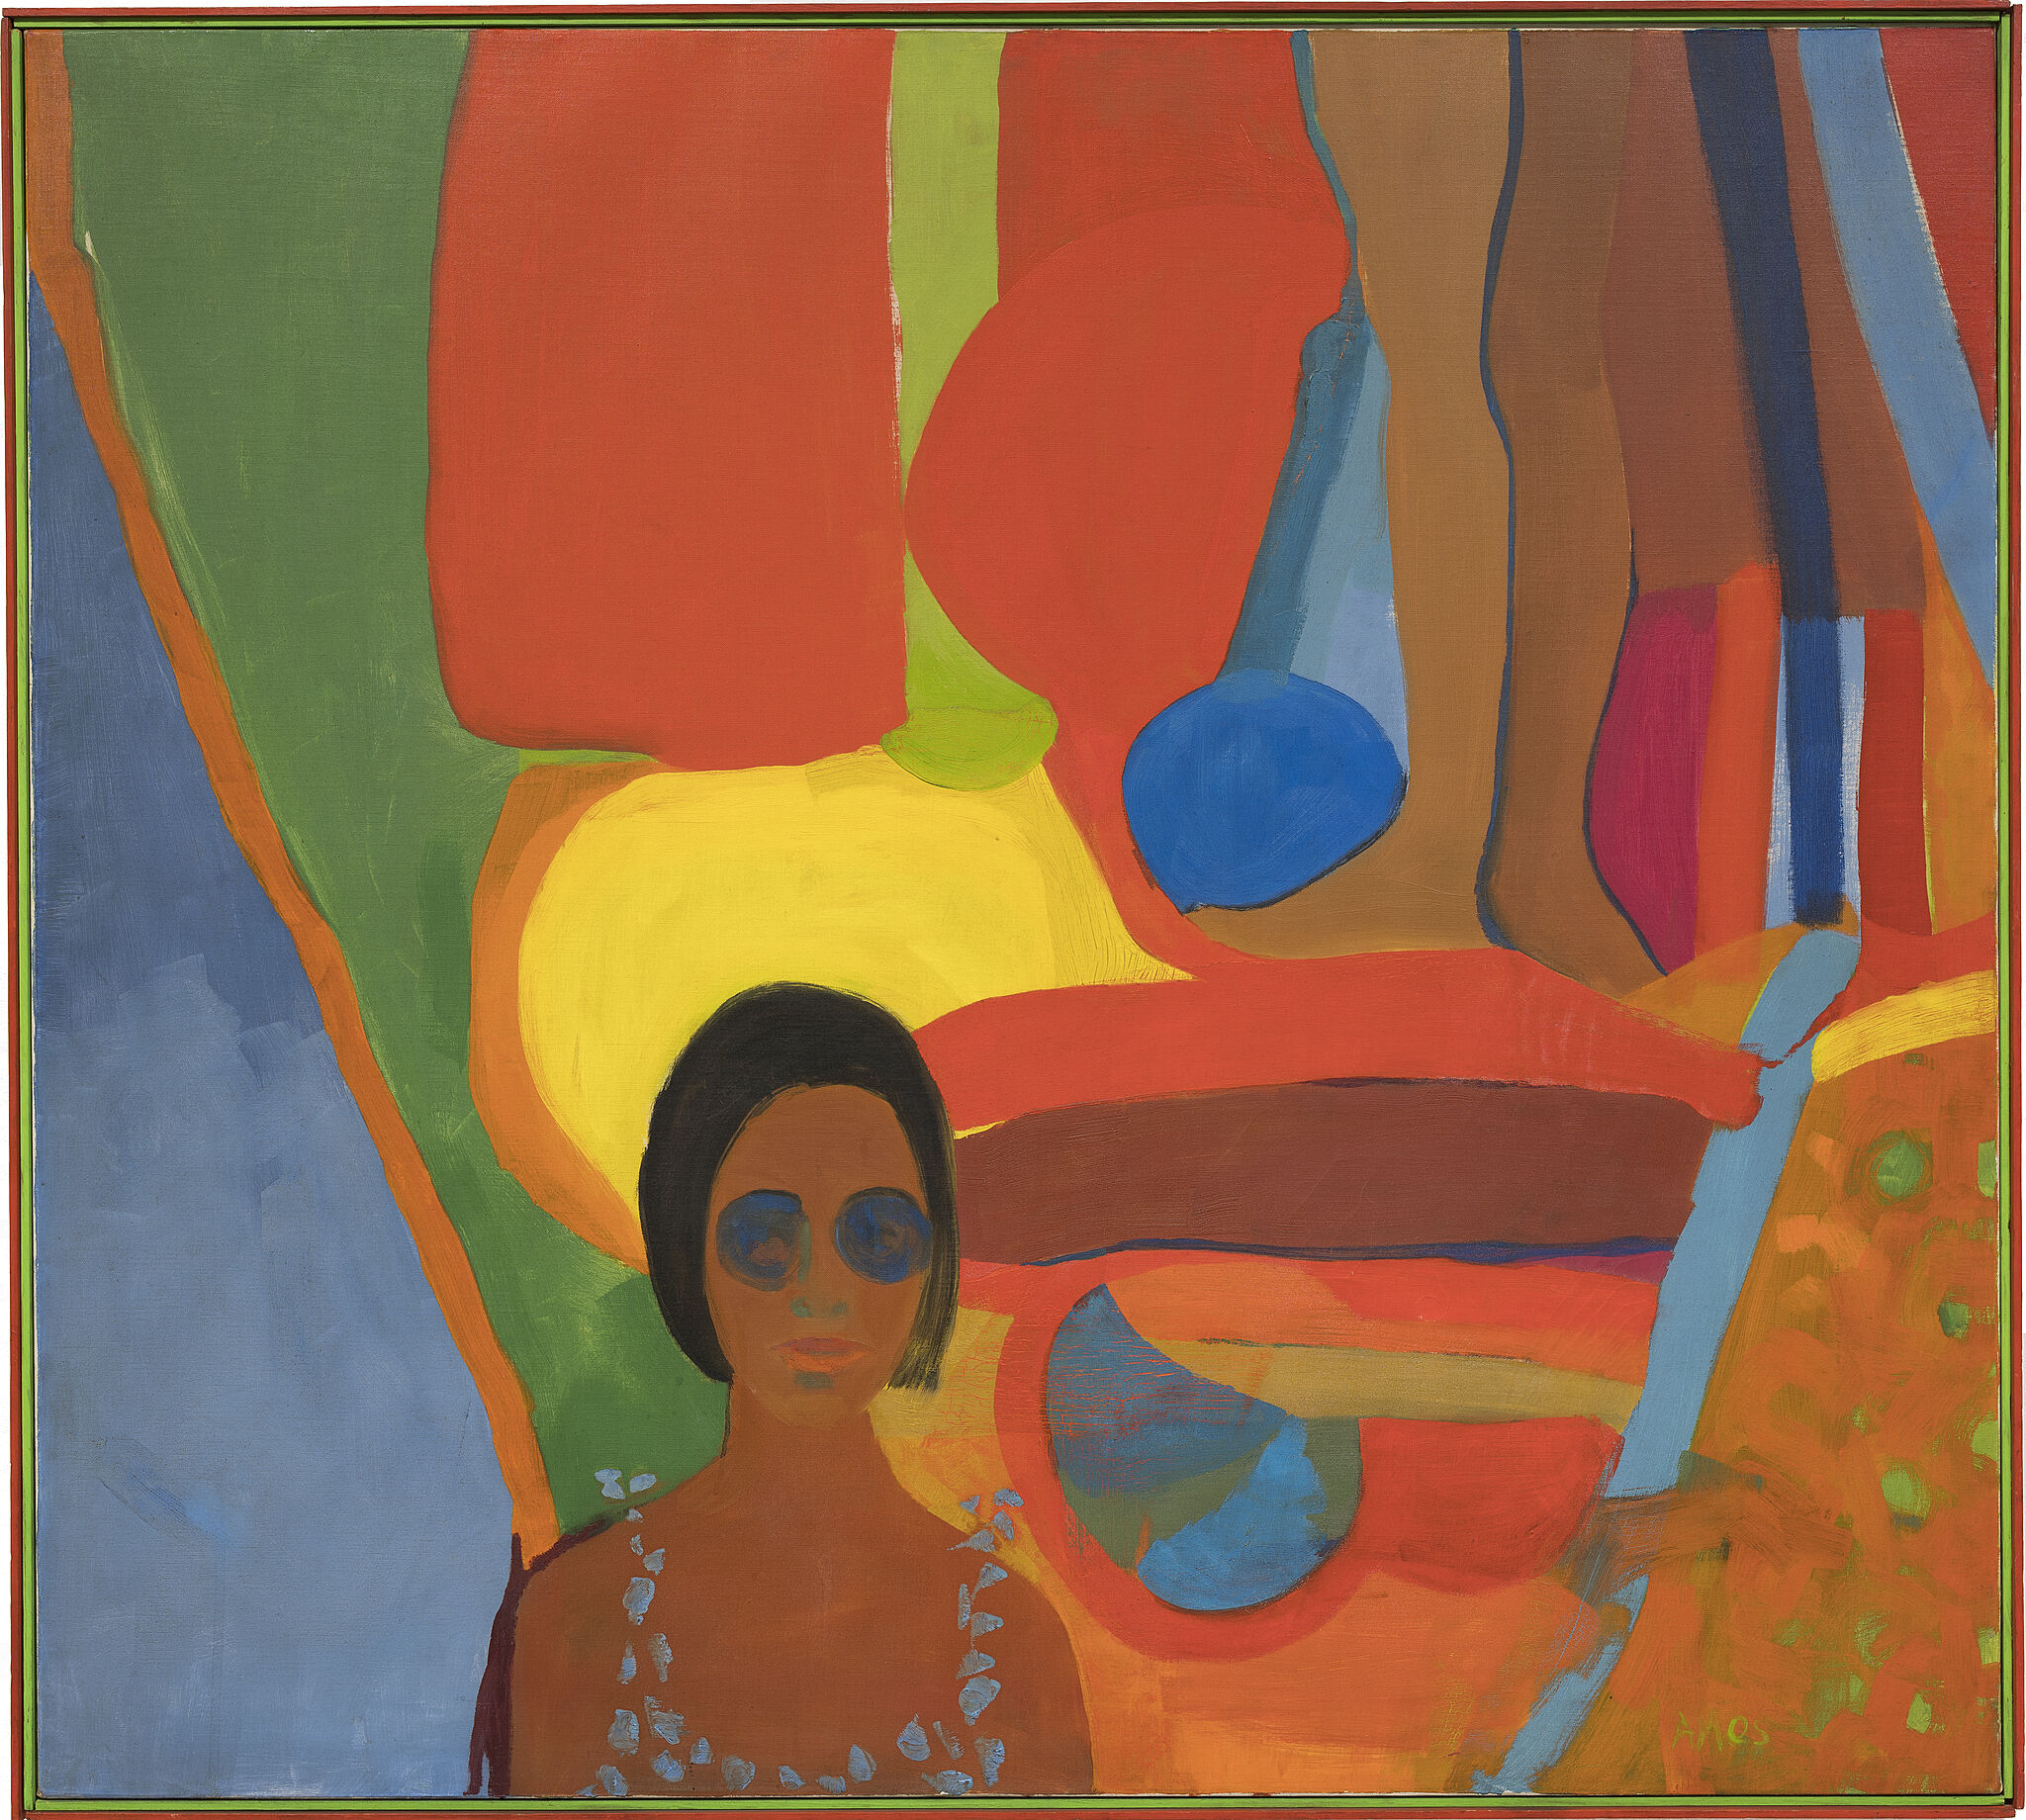 Painting of a woman and legs in bright colors.